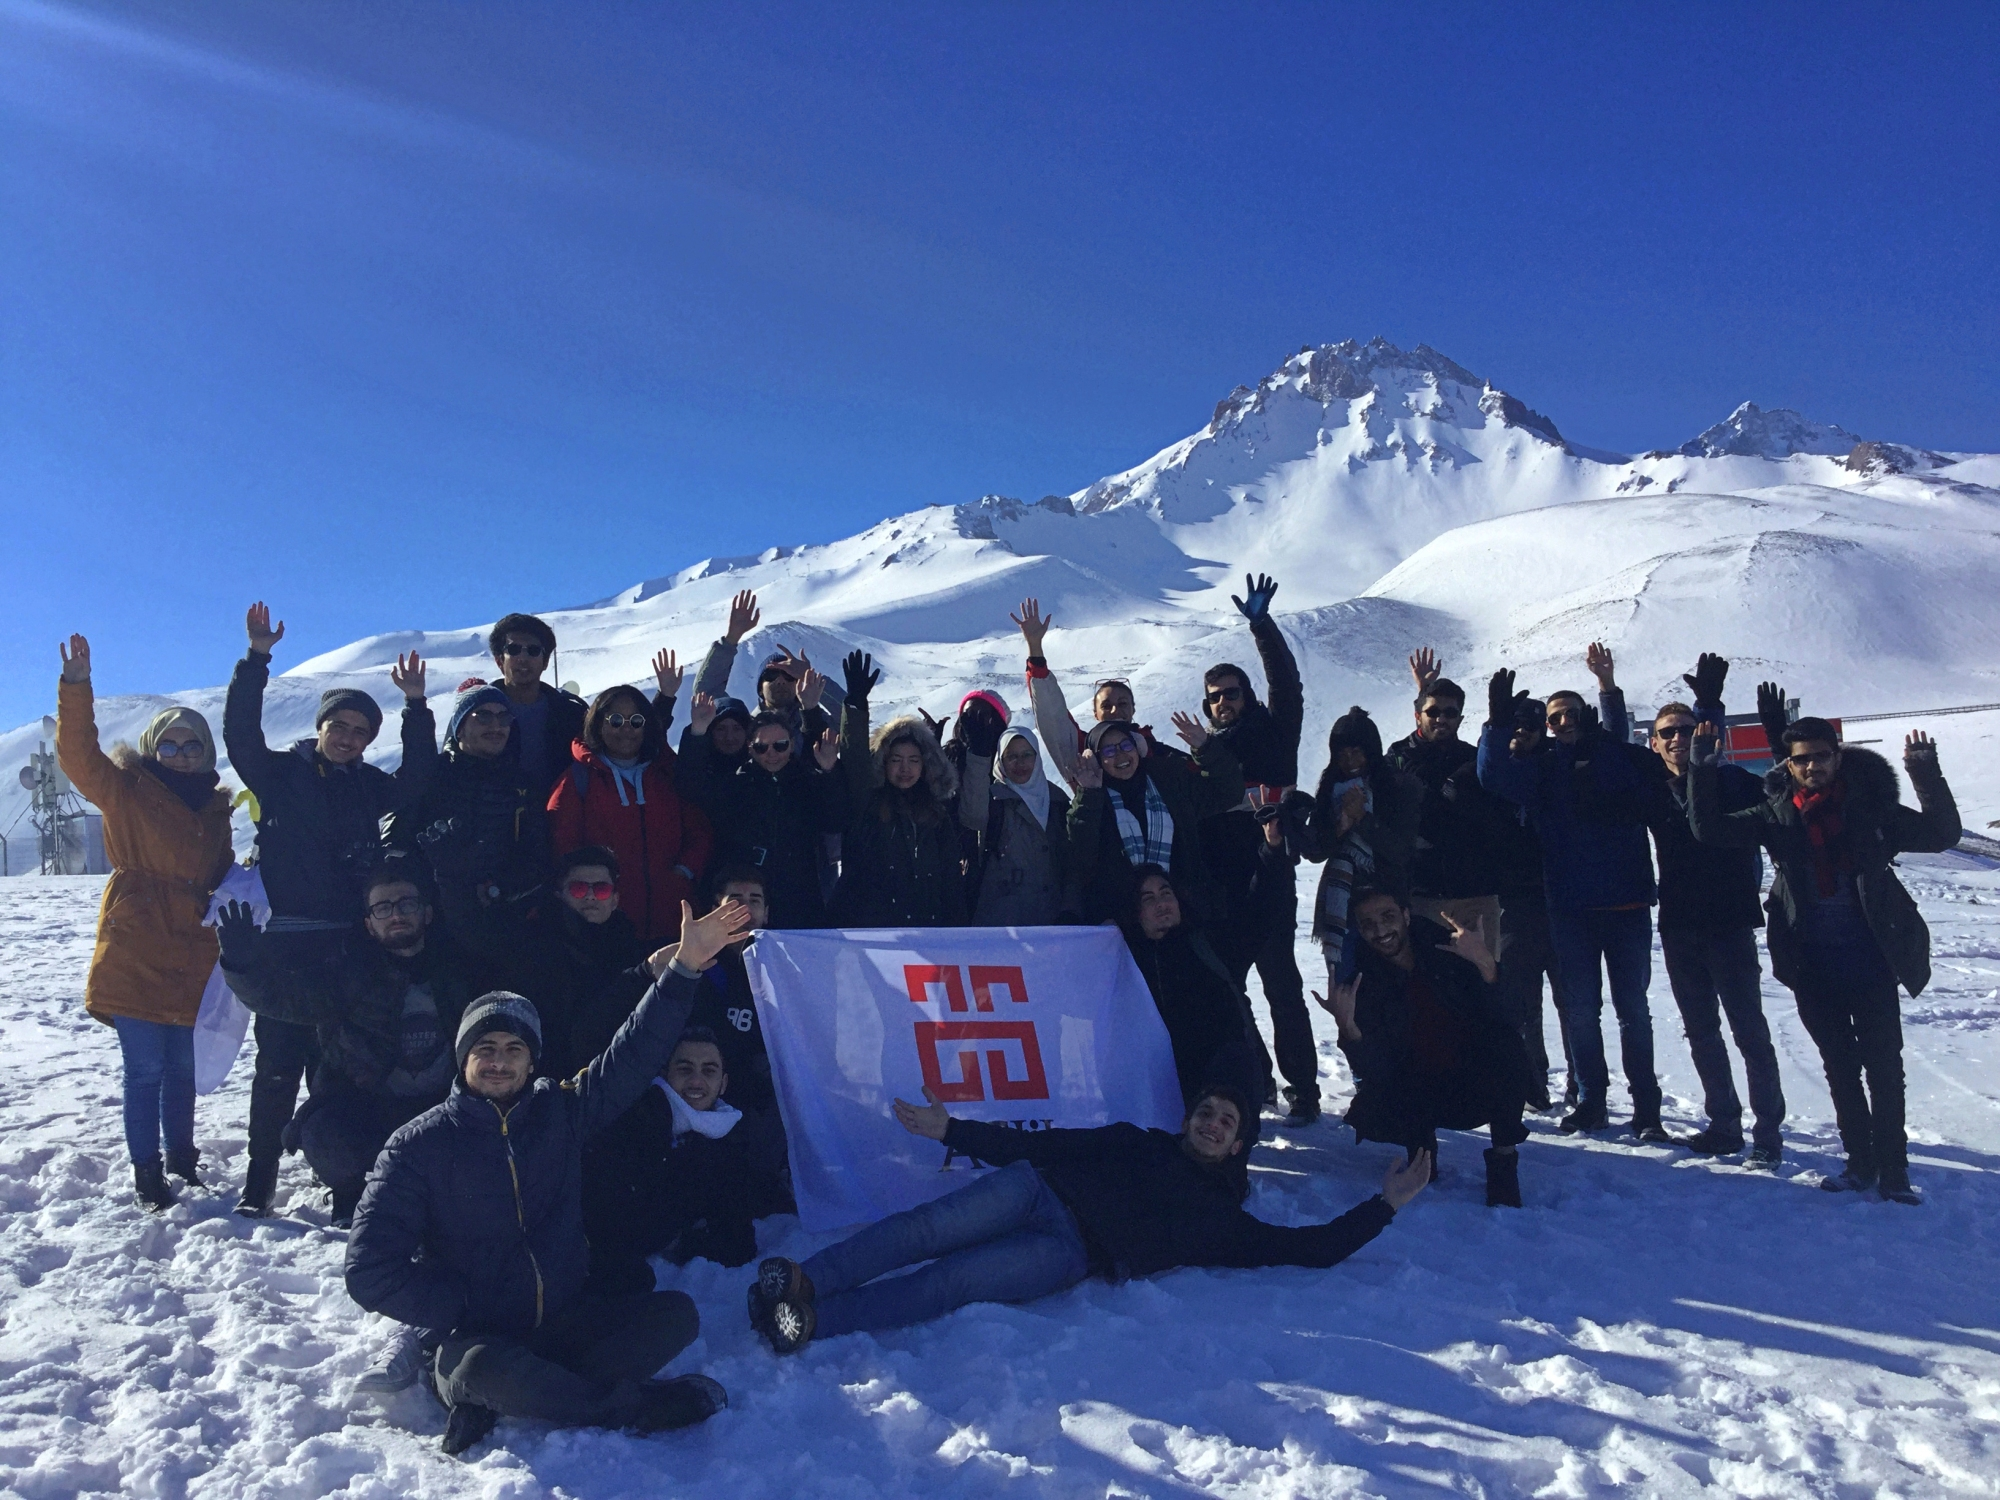 Abdullah Gül University, International Office, international students, ski, trip, snowboarding, Erciyes